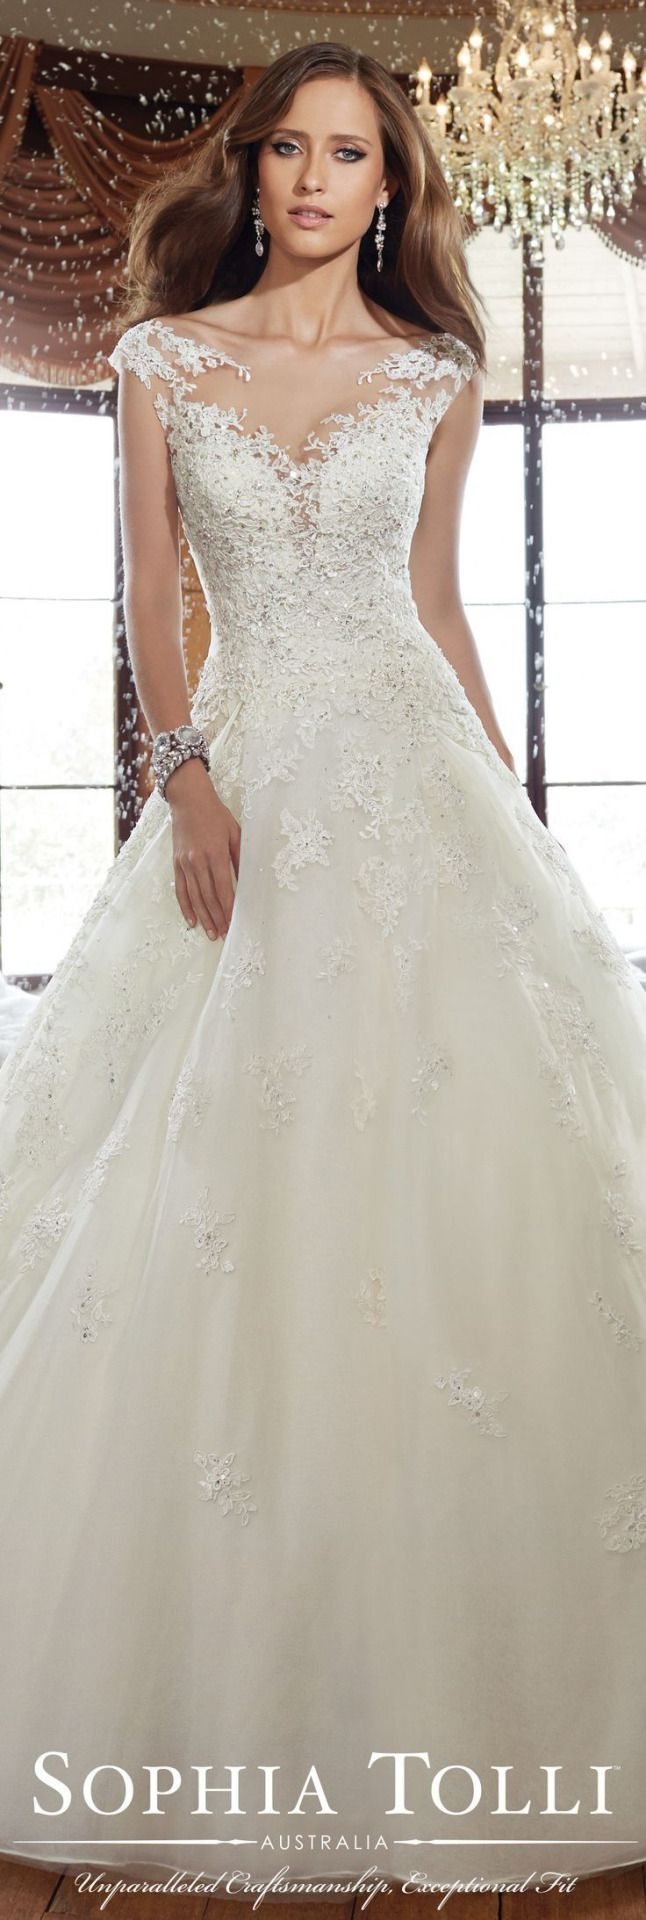 Chicago wedding dress shops   best wedding gown images on Pinterest  Gown wedding Wedding